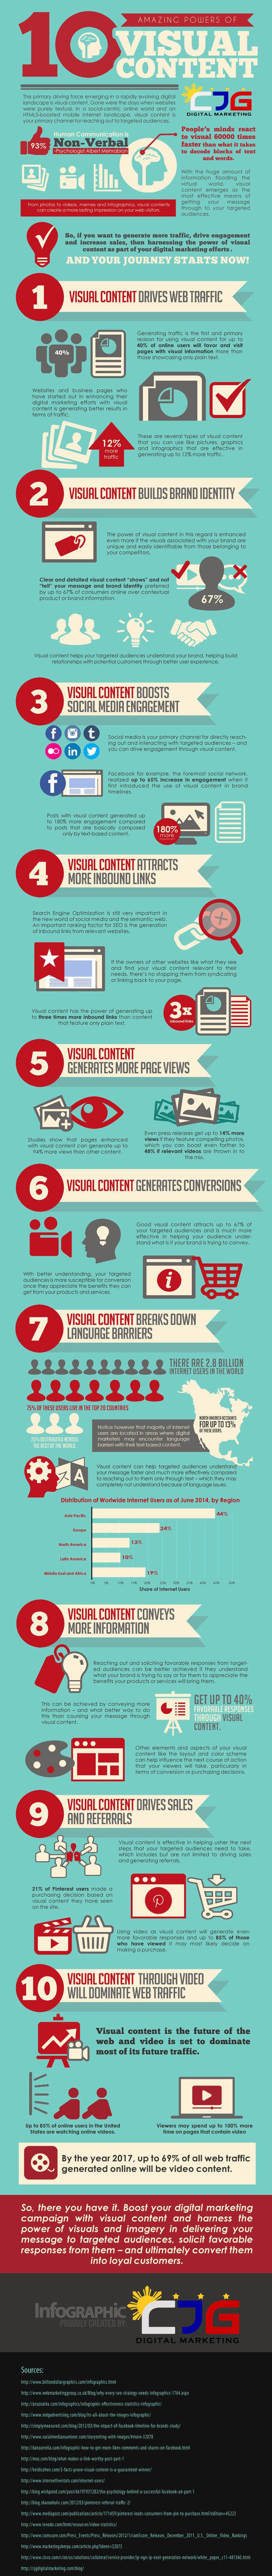 10 Amazing Powers of Visual Content [Infographic]